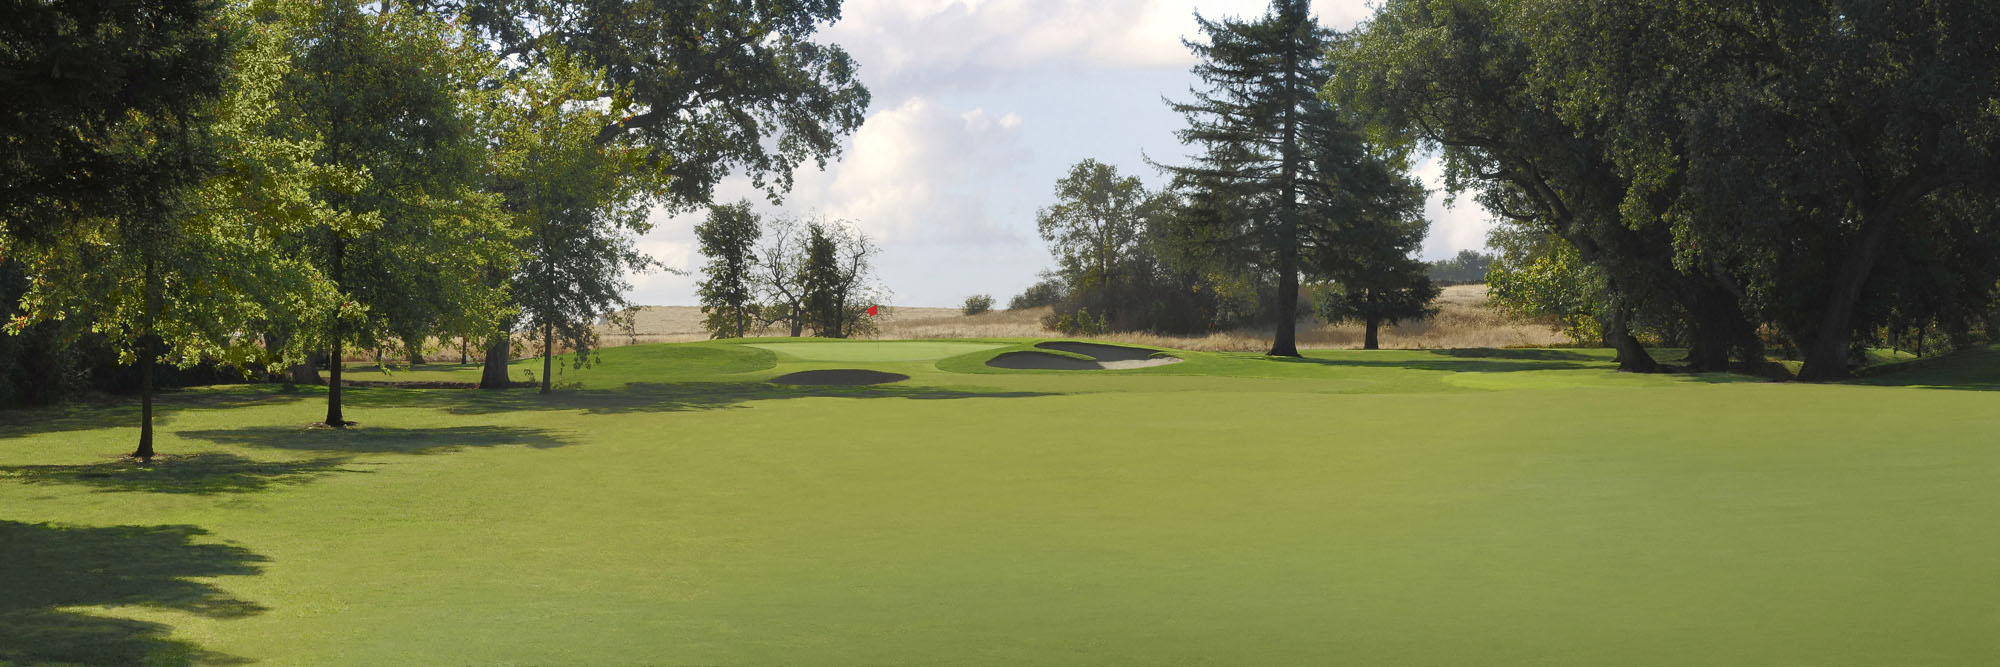 Golf Course Image - Butte Creek Country Club No. 14